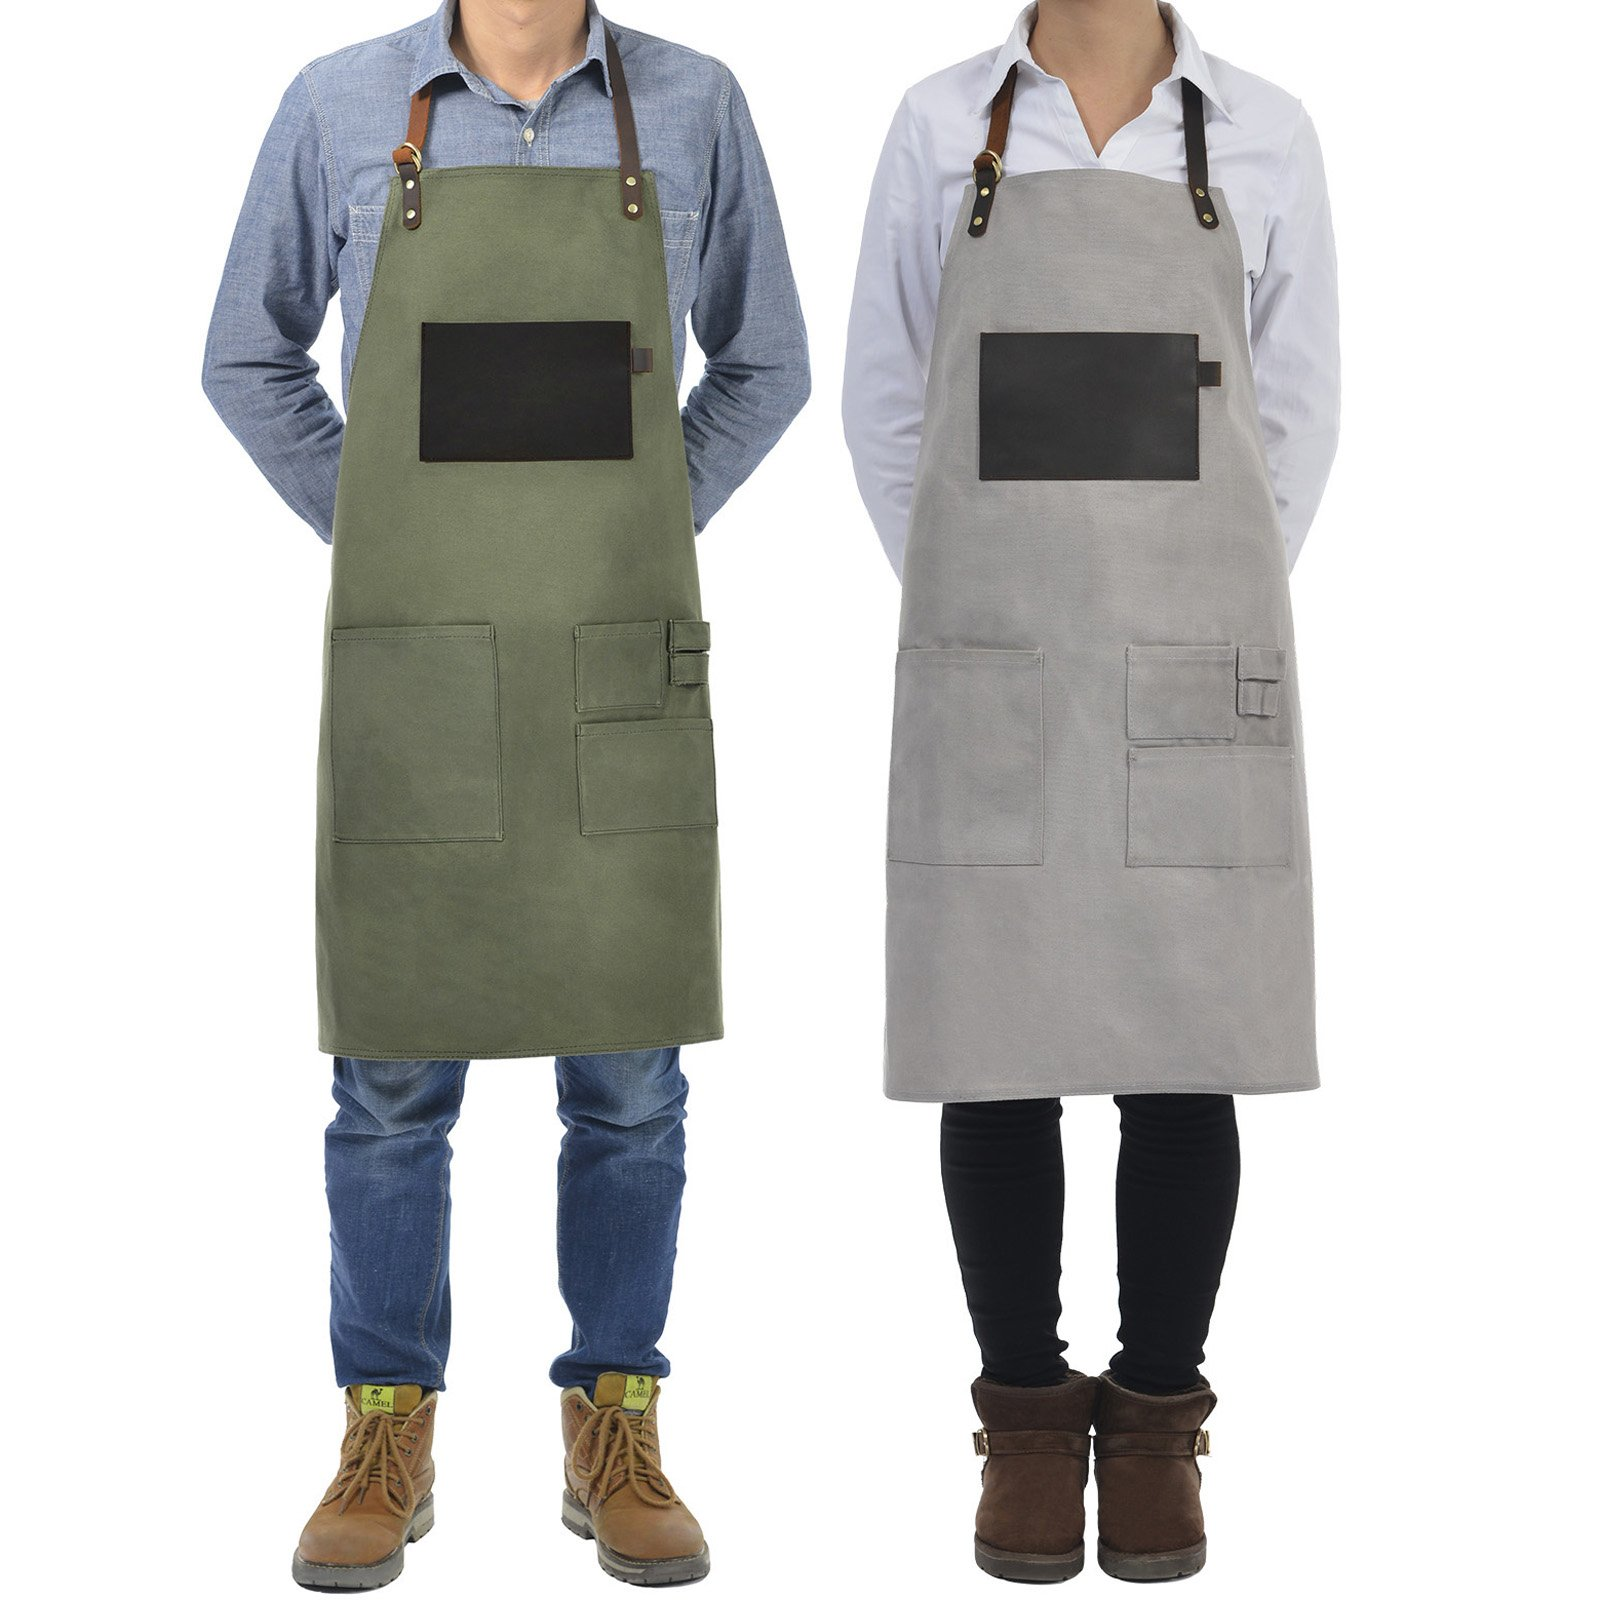 VEEYOO Heavy Duty Waxed Canvas Utility Apron with Pockets, Adjustable Shop Work Tool Welding Apron for Men and Women, Tan, 27x34 inches by VEEYOO (Image #8)